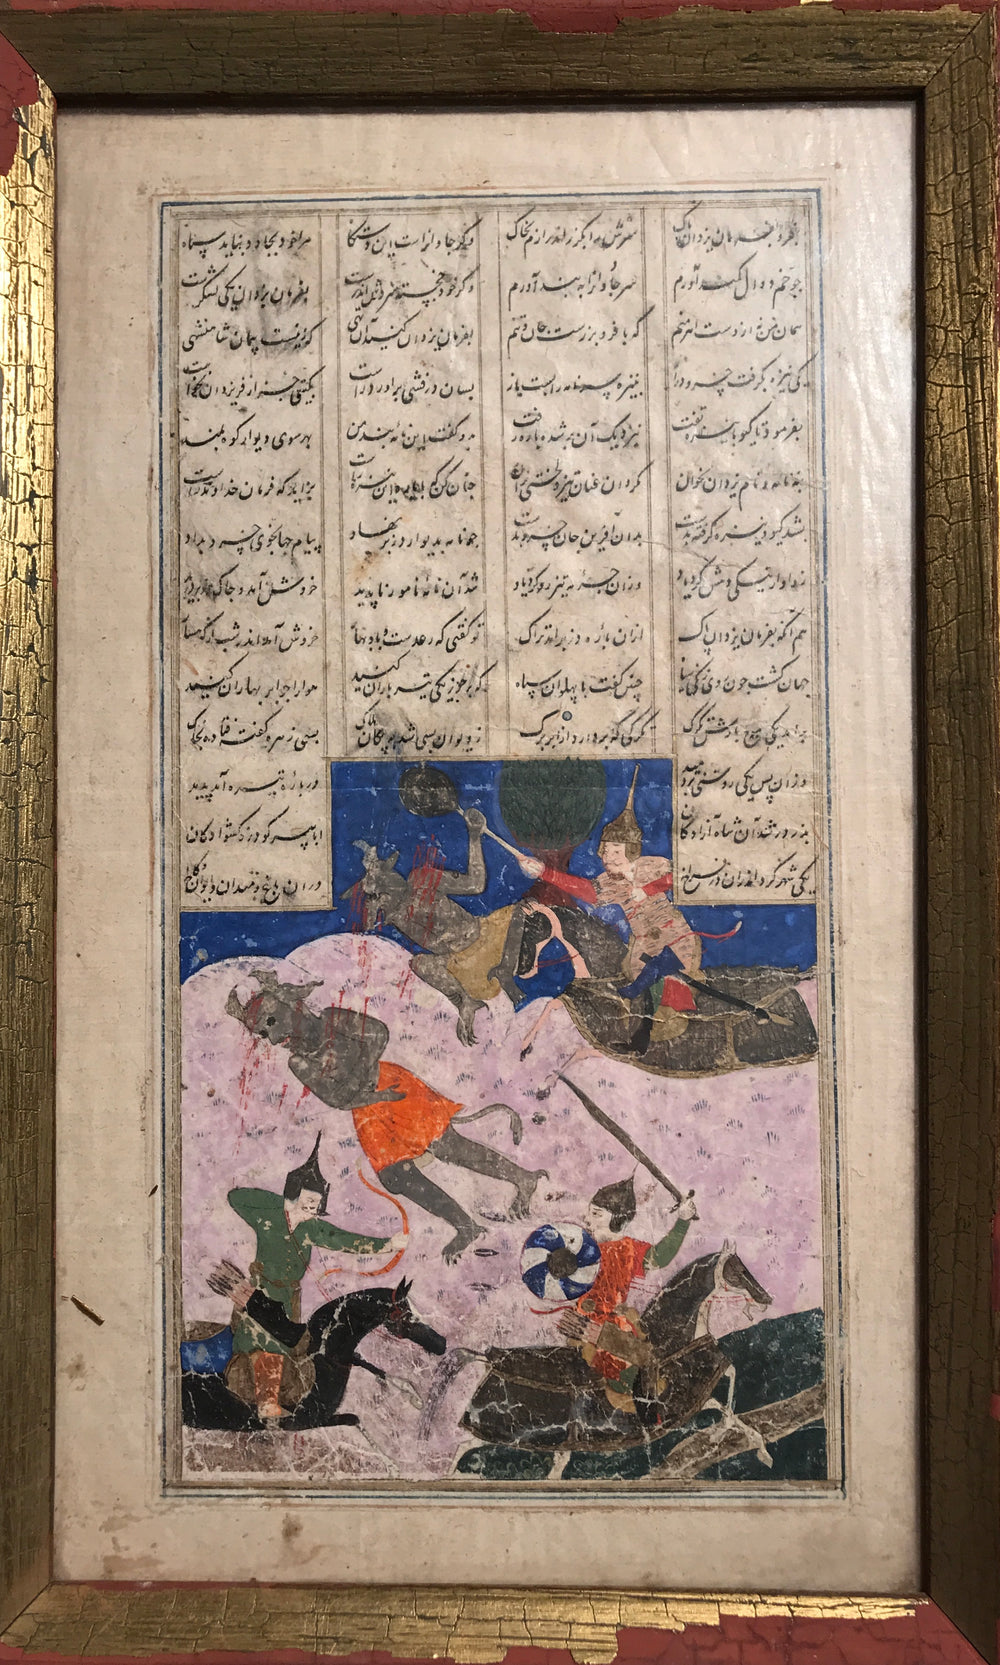 Mughal India miniature warriors fighting jinn